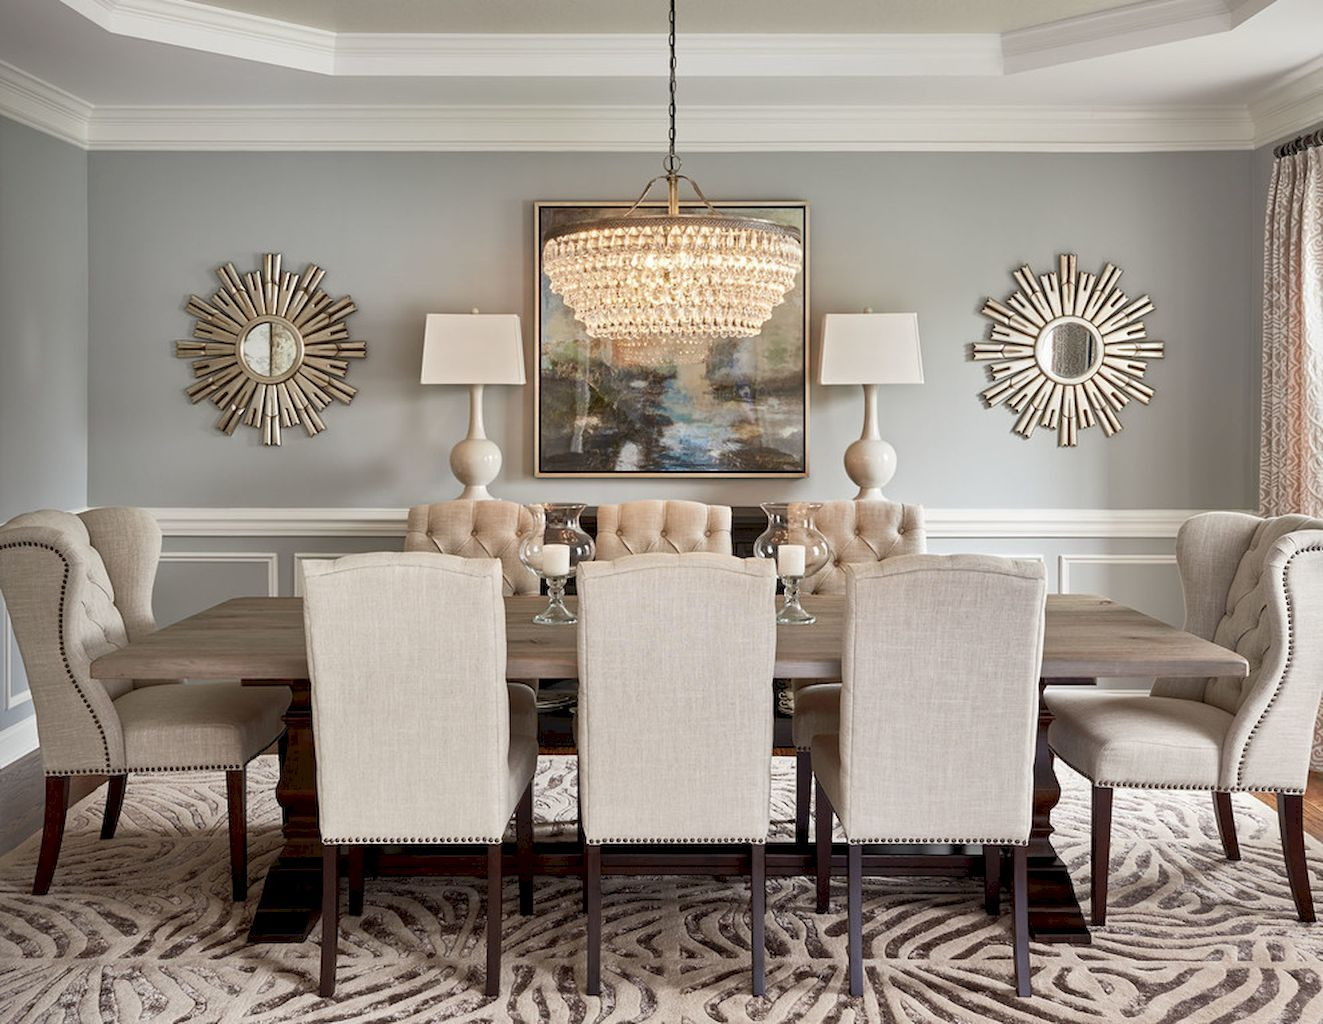 Awesome 110 Beautiful And Elegant Dining Room Chandelier Lighting Ideas Https Livinking C Dining Room Colors